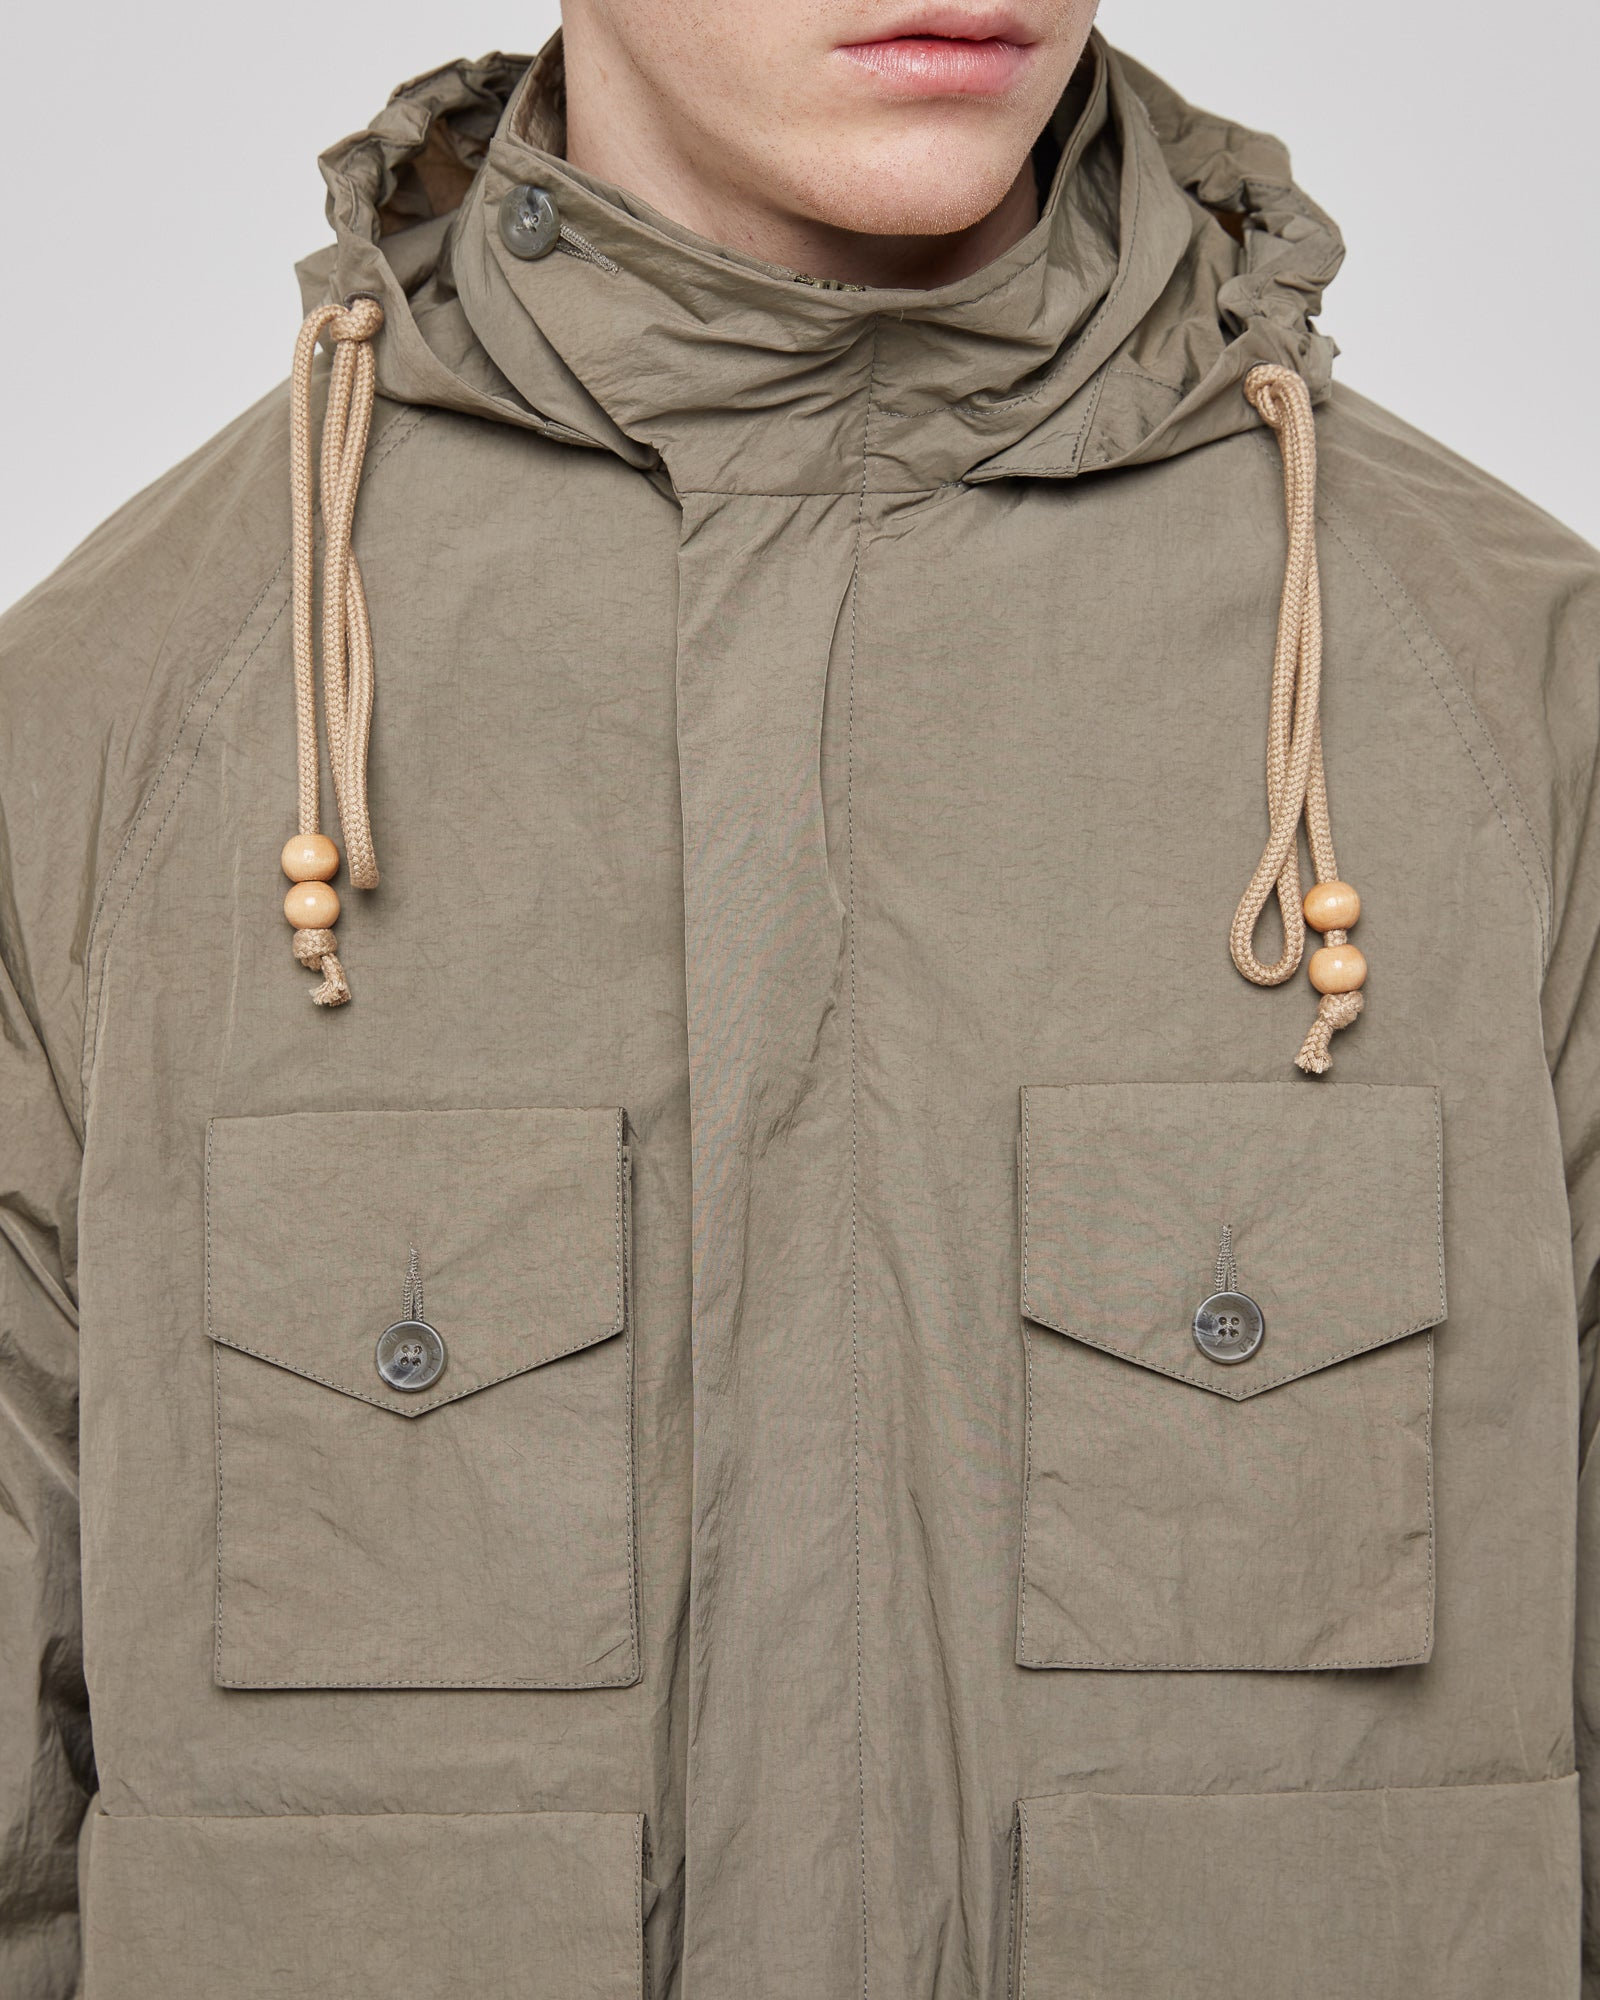 Script Hunter Jacket in Taupe